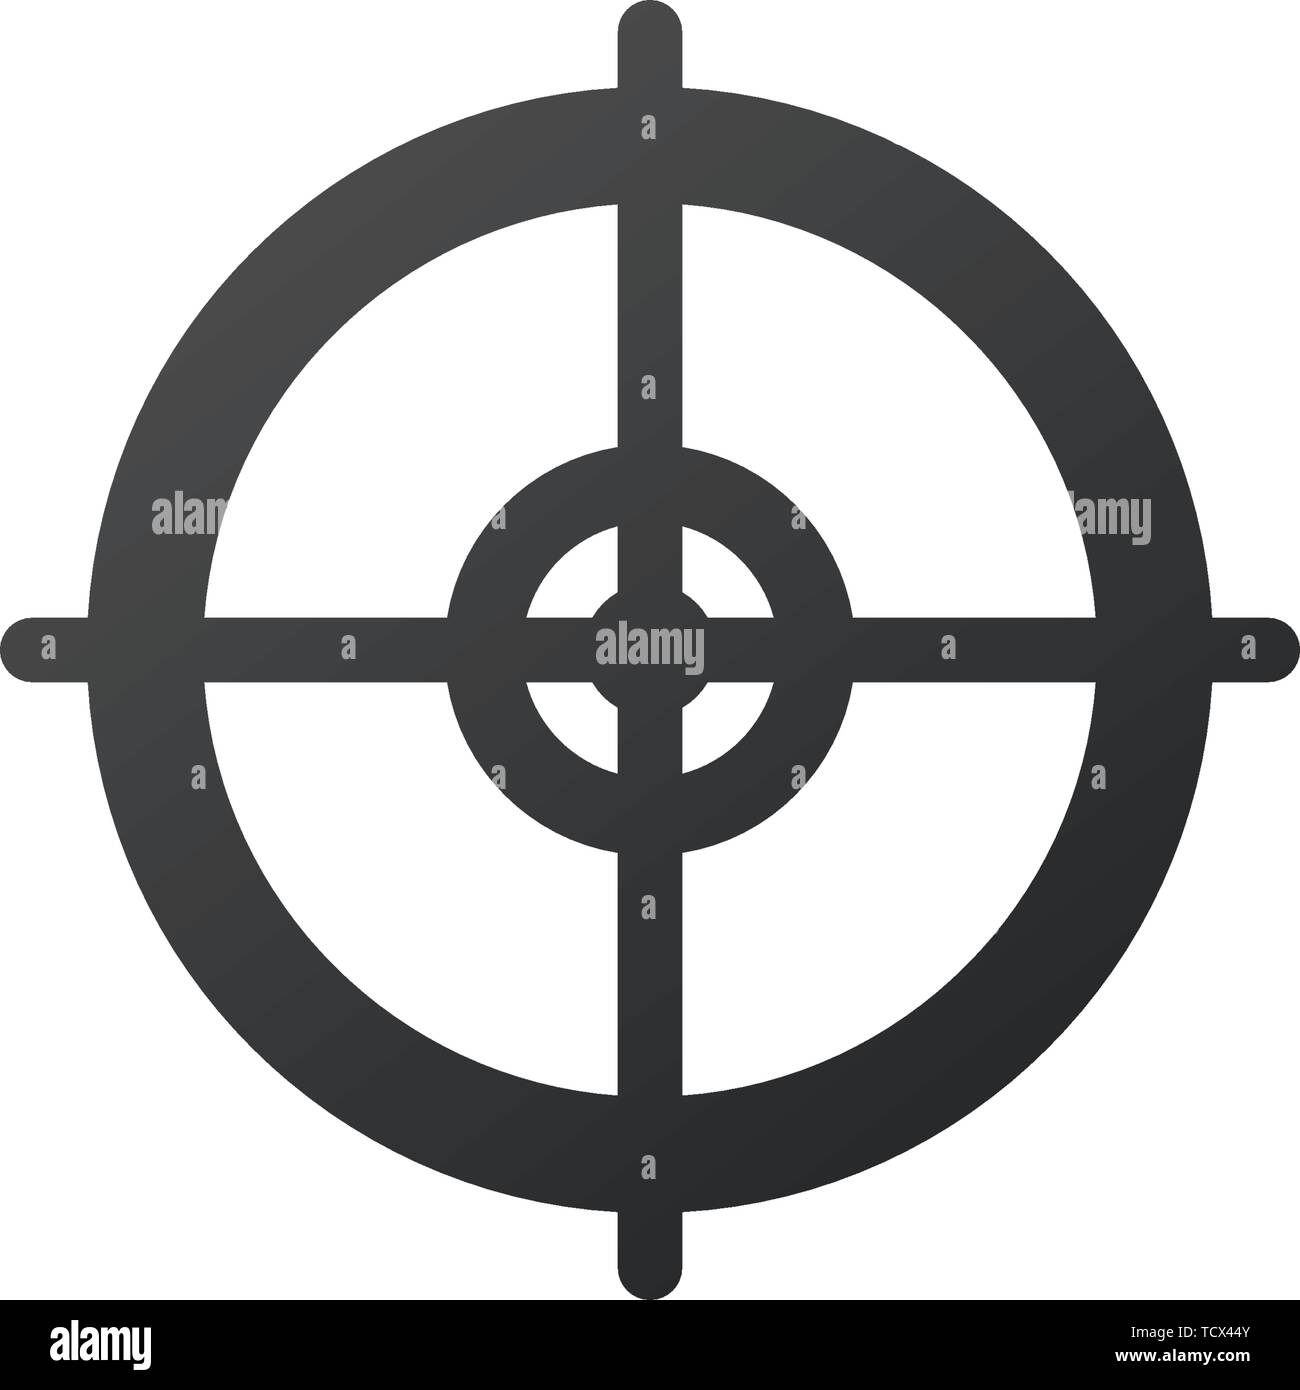 target aim icon vector illustration isolated on white background stock vector image art alamy alamy